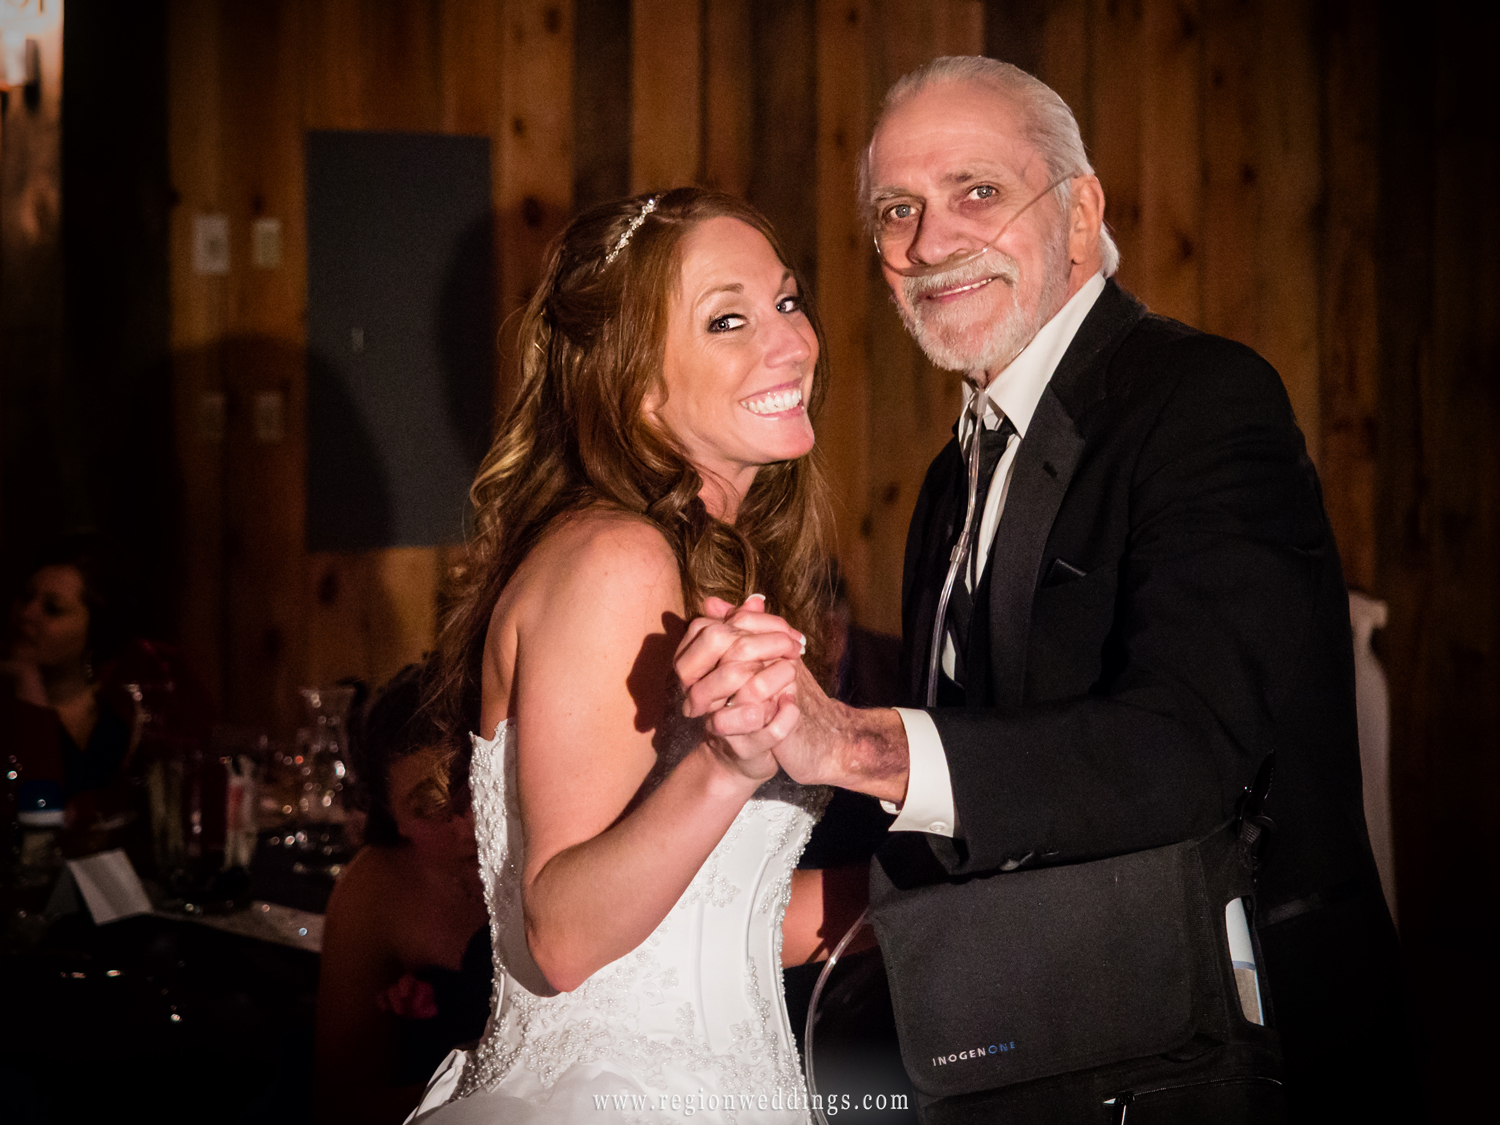 The bride dances with her father at a rustic barn wedding reception.